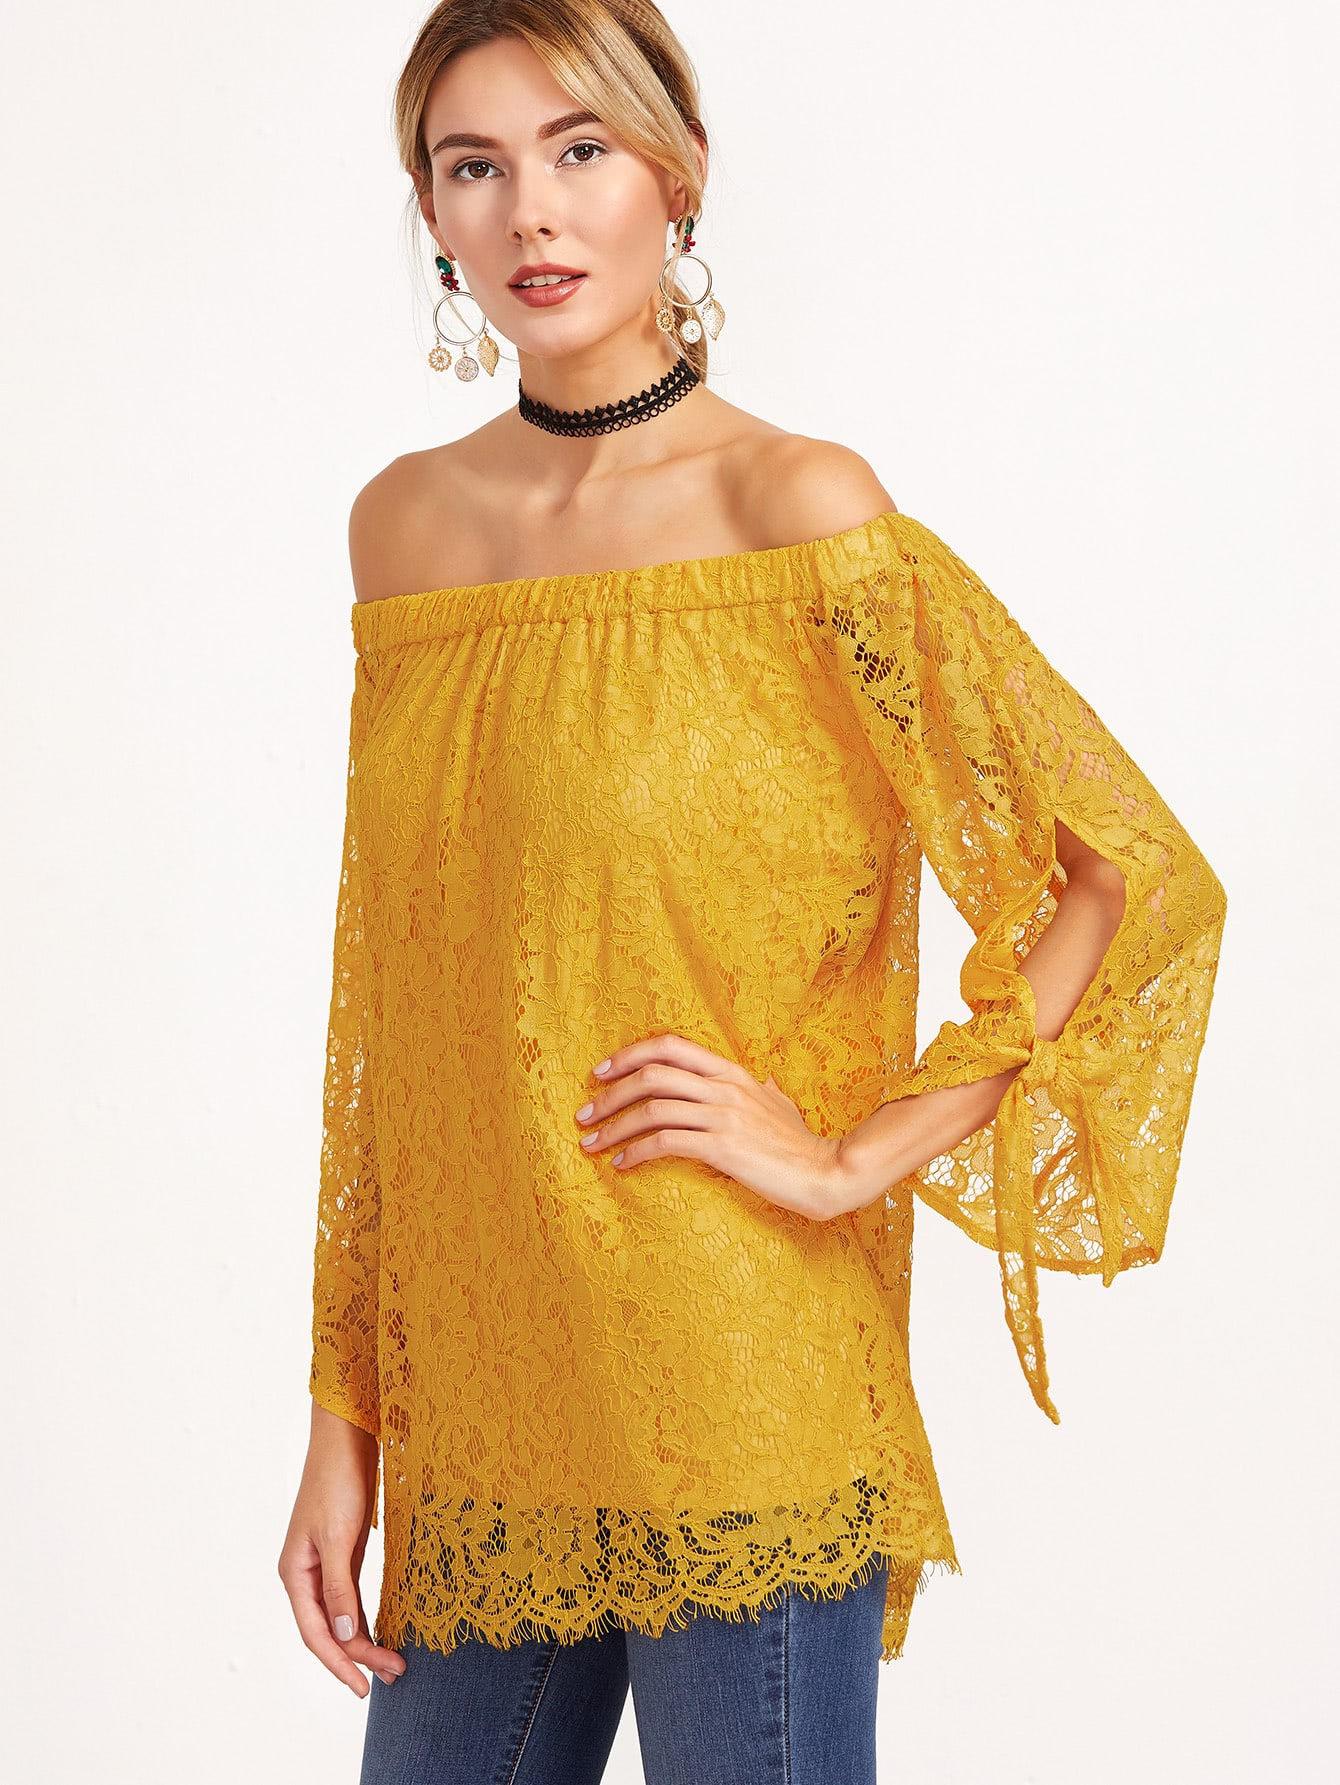 Yellow Off The Shoulder Tie Sleeve Floral Lace Top blouse161130718